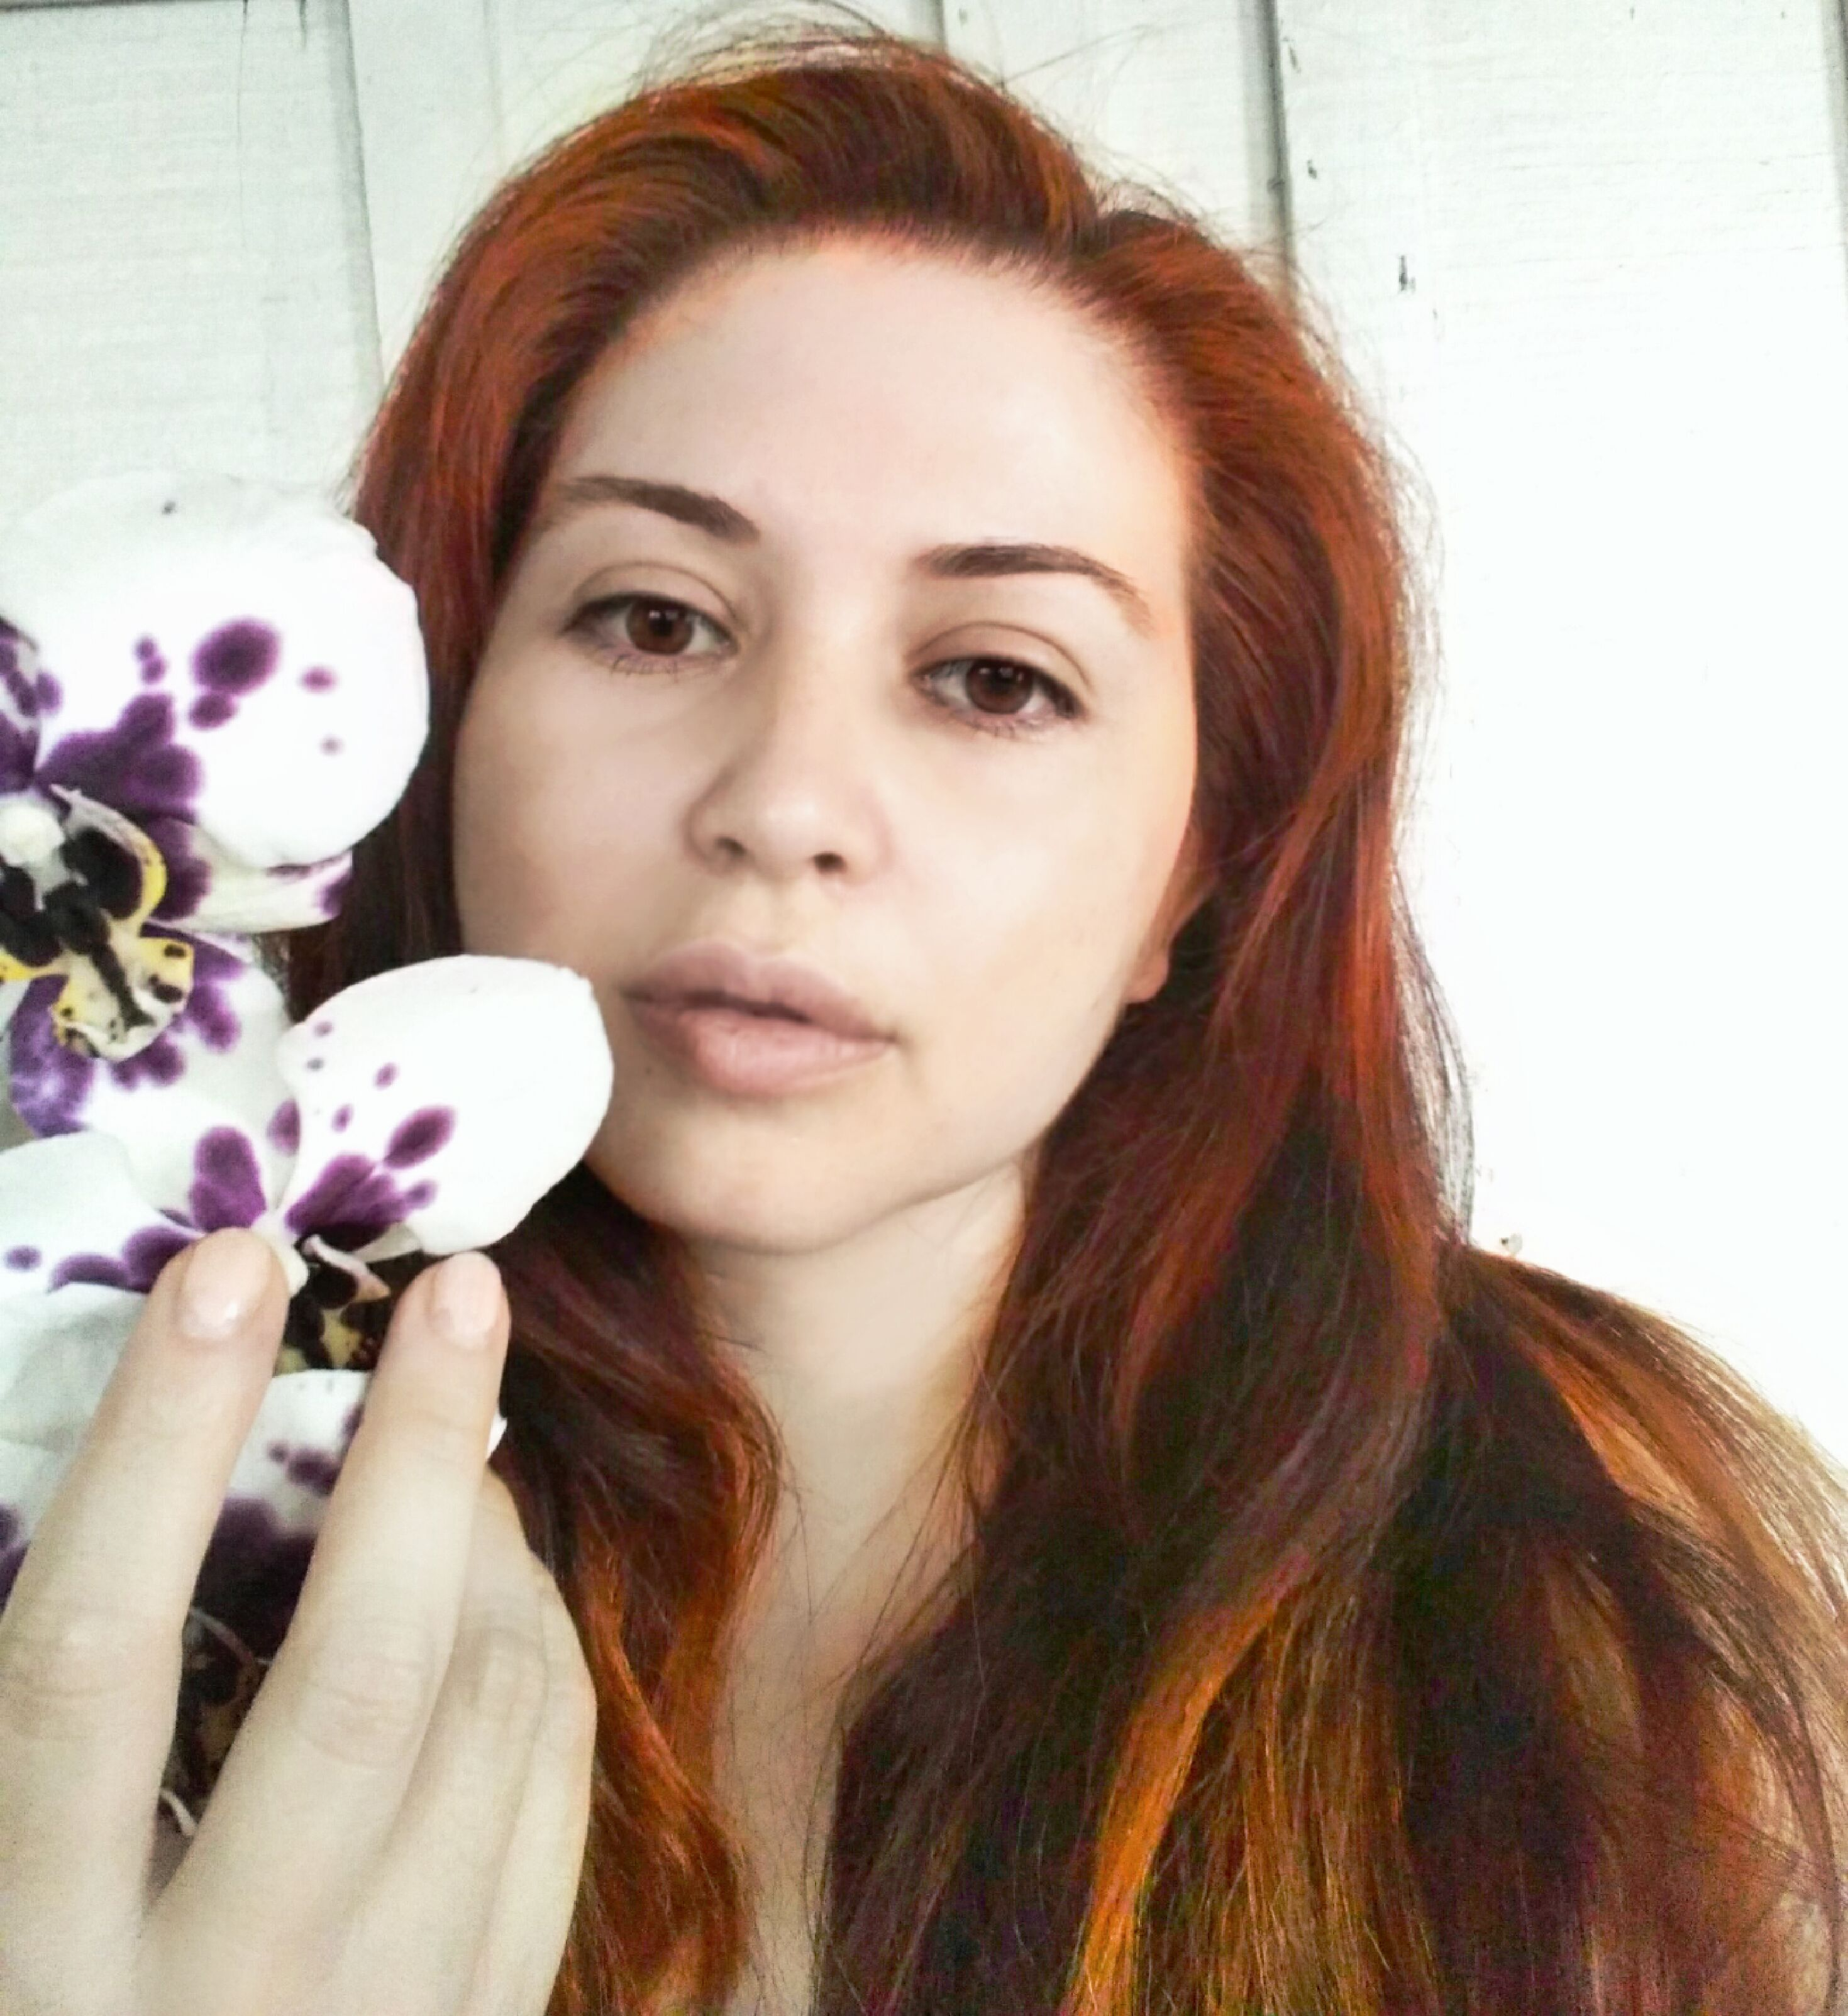 beauty, cute, face, flowers, ginger